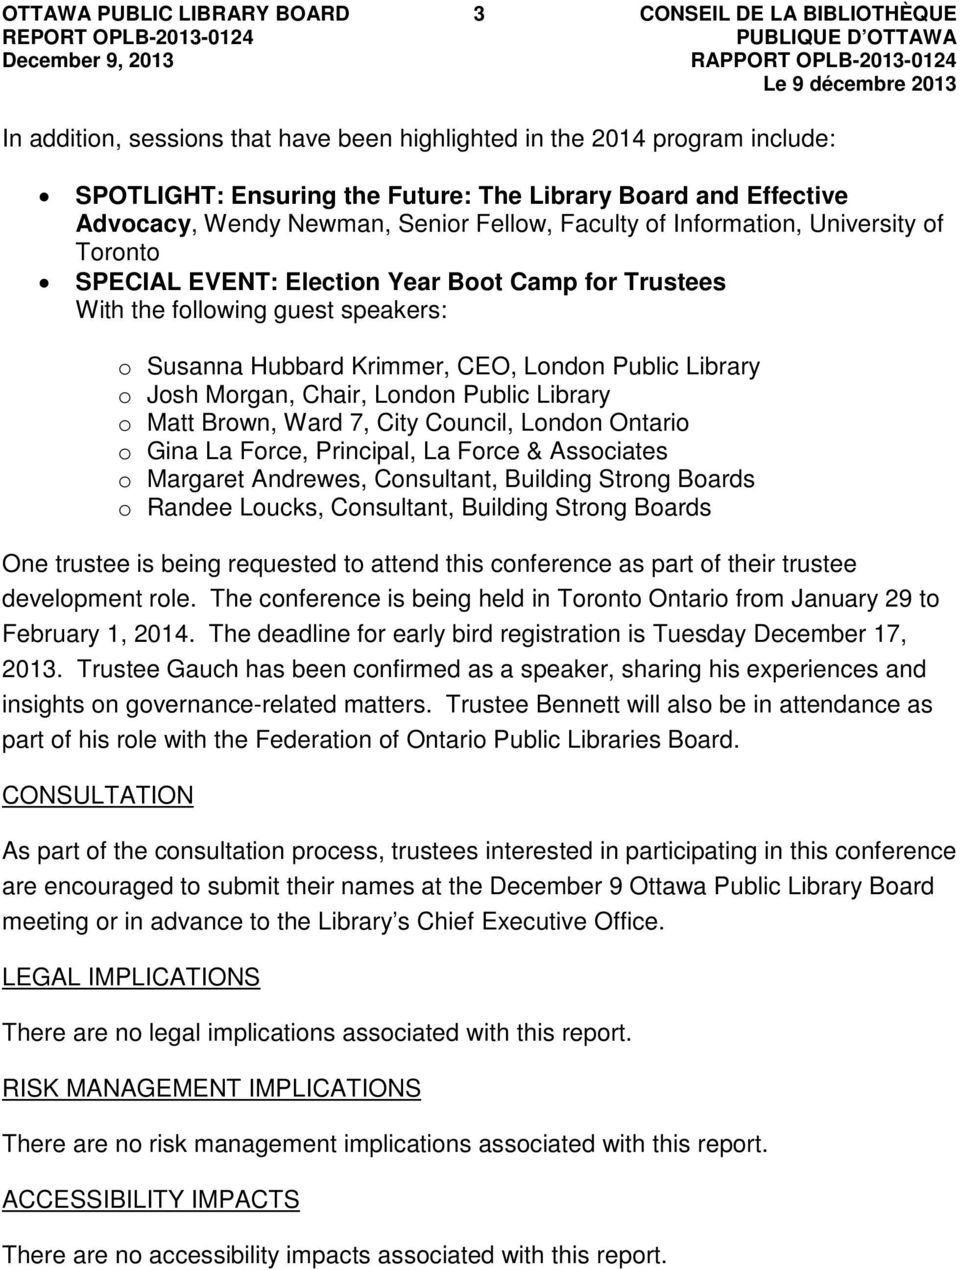 Library o Josh Morgan, Chair, London Public Library o Matt Brown, Ward 7, City Council, London Ontario o Gina La Force, Principal, La Force & Associates o Margaret Andrewes, Consultant, Building